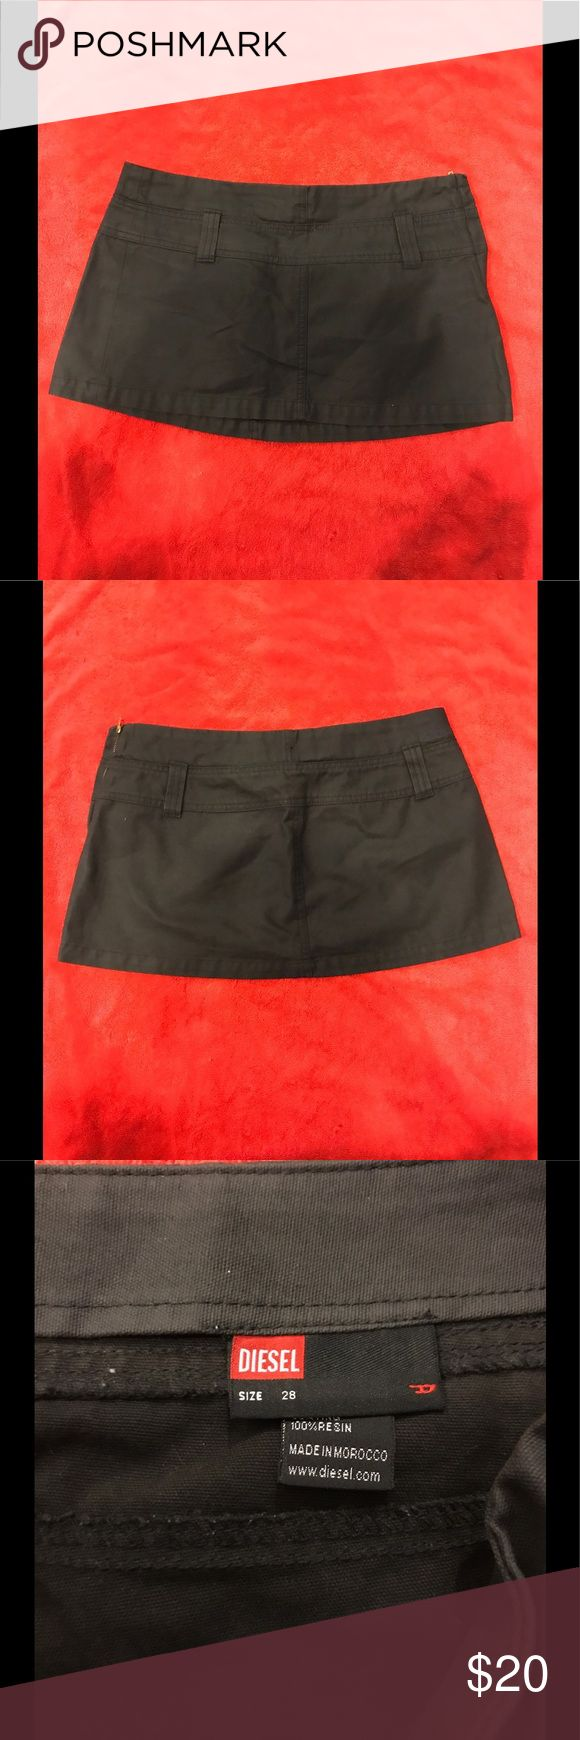 Women's diesel skirt Authentic women's diesel skirt. Color is army green. Good condition. Size 28 Diesel Skirts